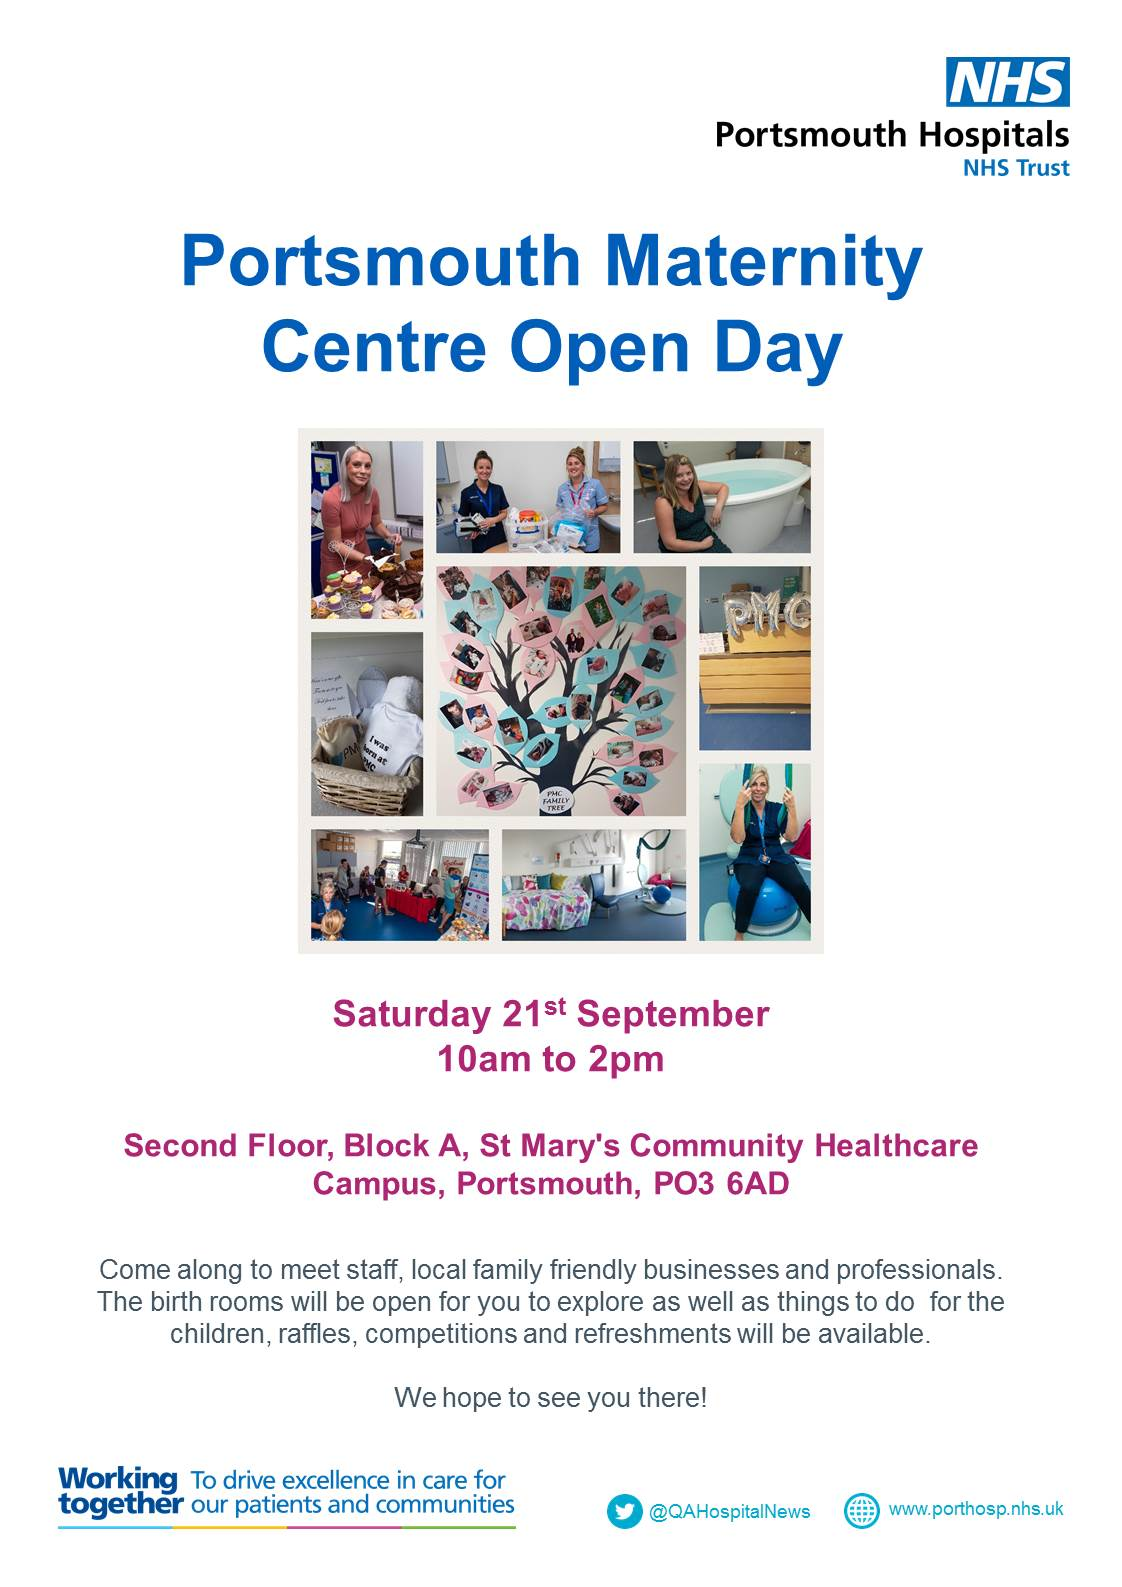 Portsmouth Maternity Centre to hold second annual open day